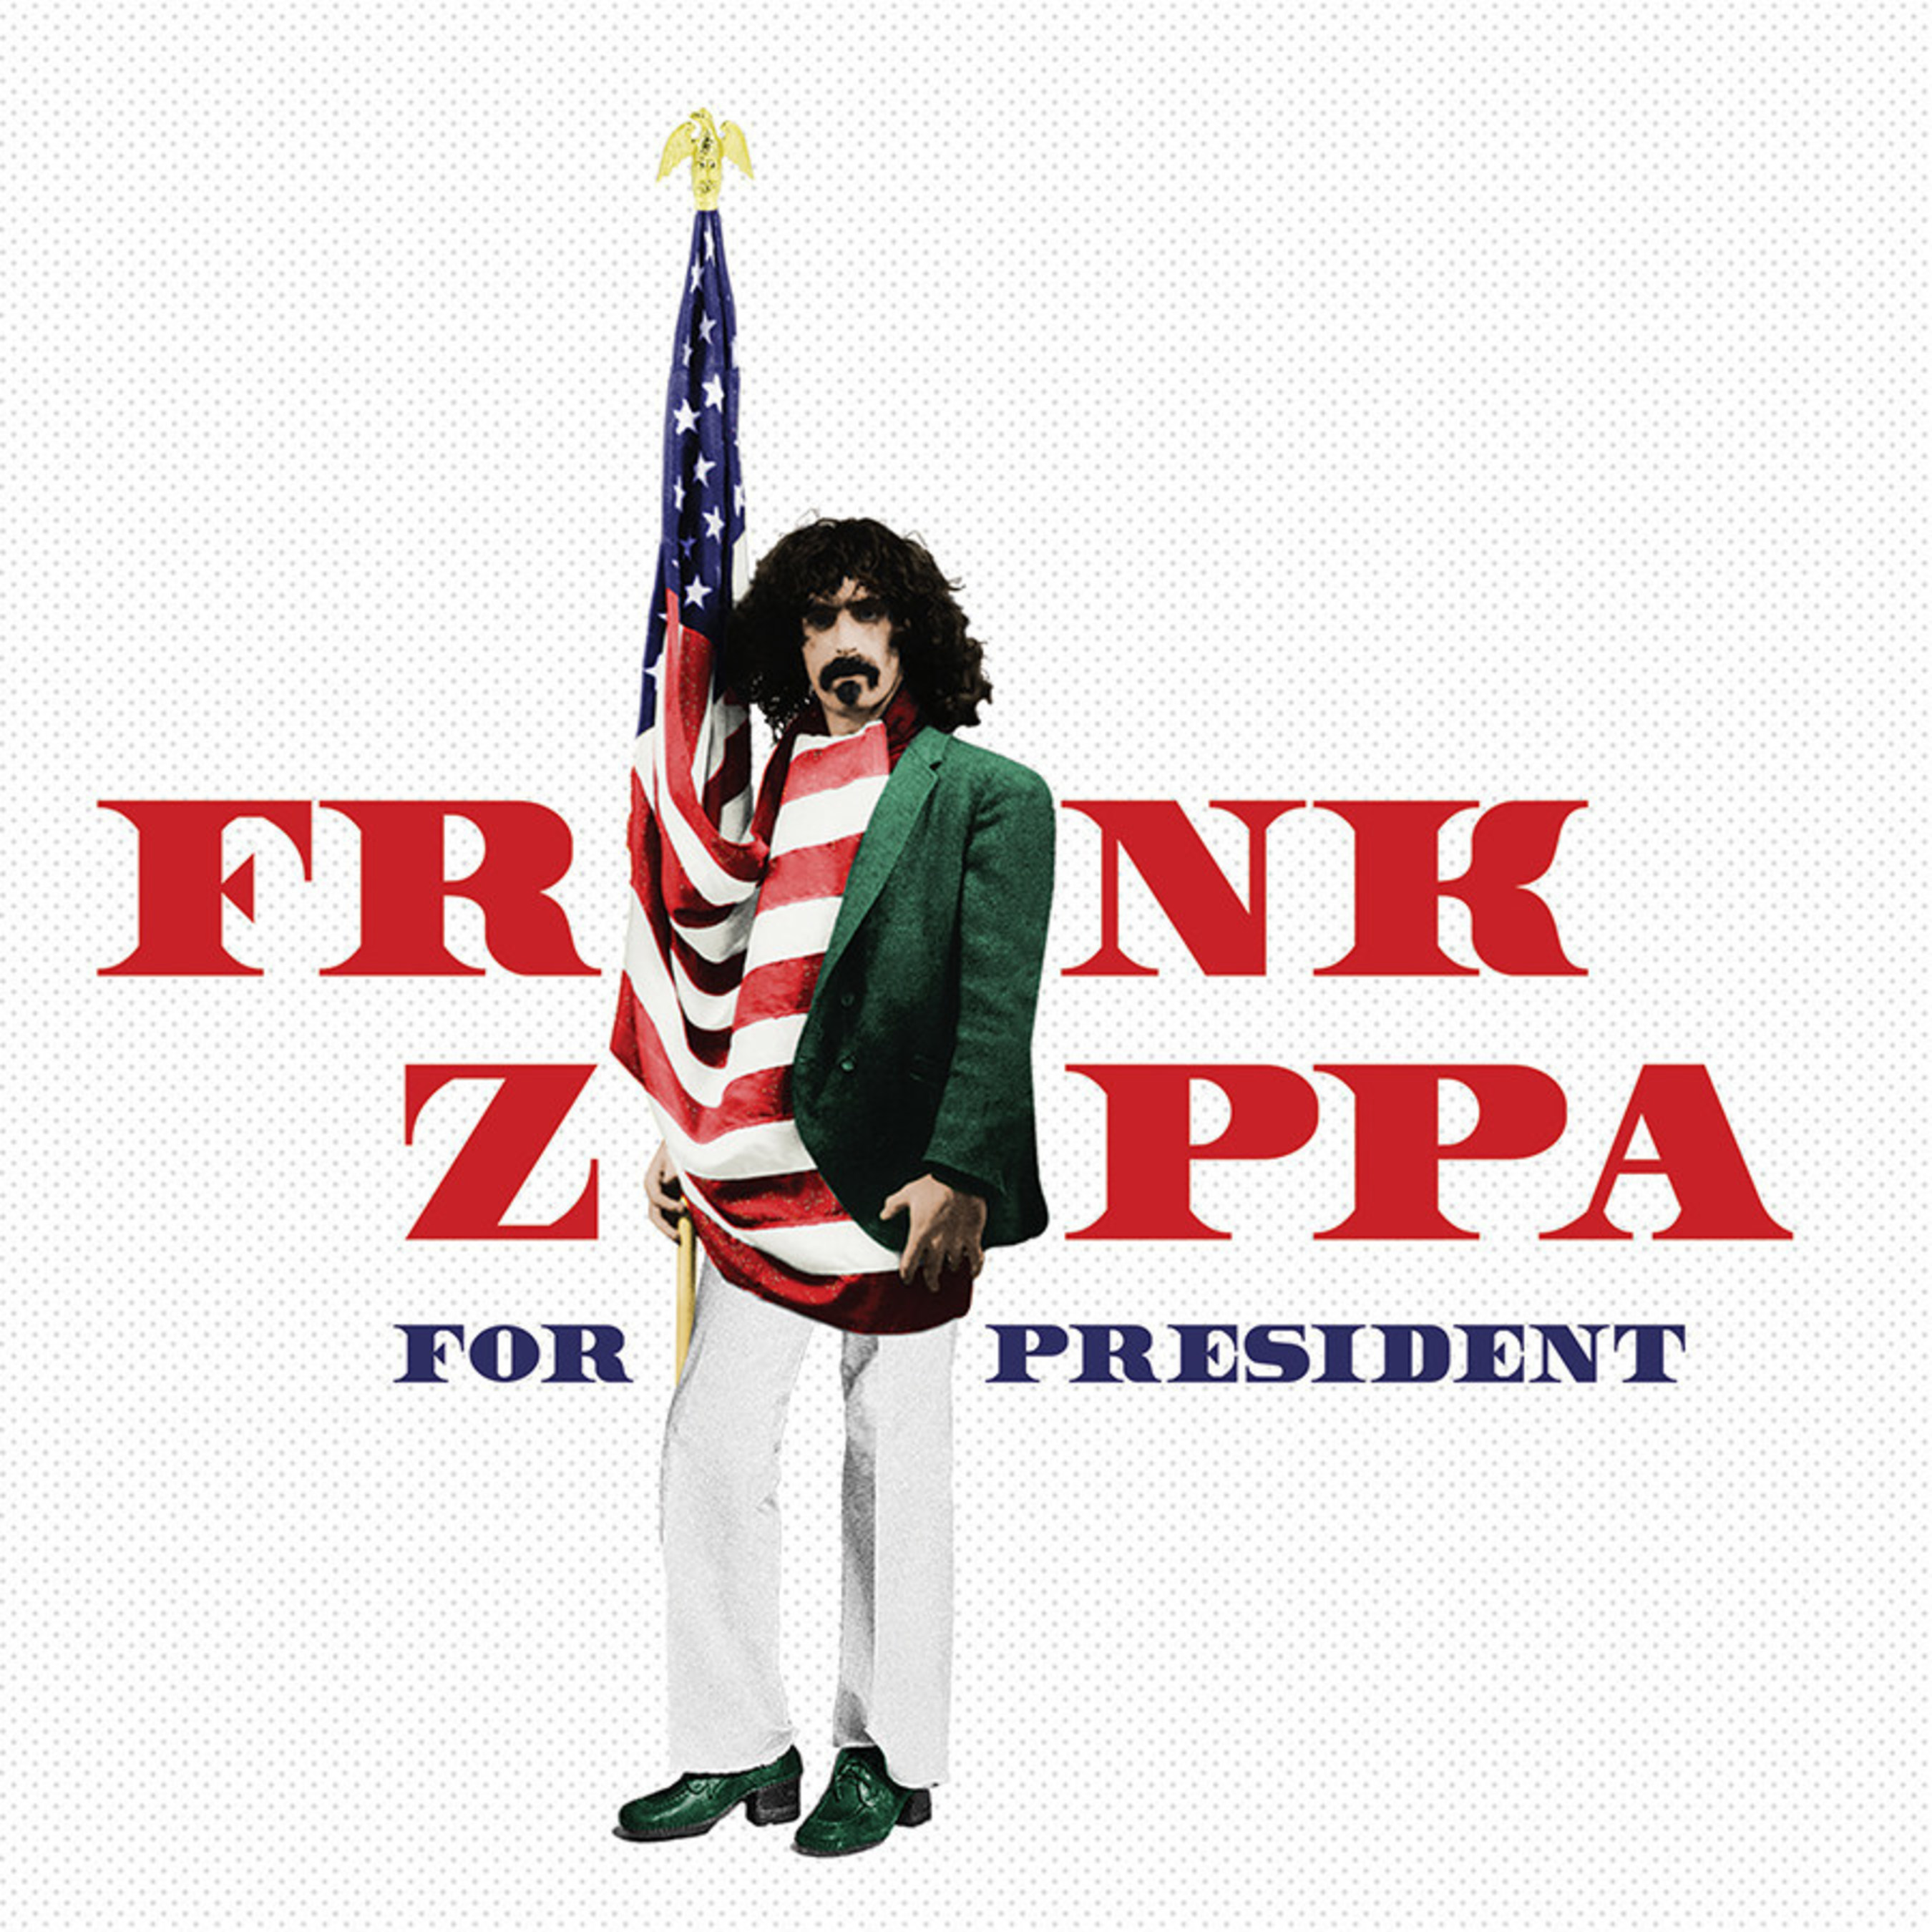 Two new Frank Zappa titles, 'Frank Zappa for President' and 'The Crux of the Biscuit,' will be released on CD July 15 by Zappa Records/UMe. Both releases feature previously unreleased material from the Zappa Vault. www.zappa.com